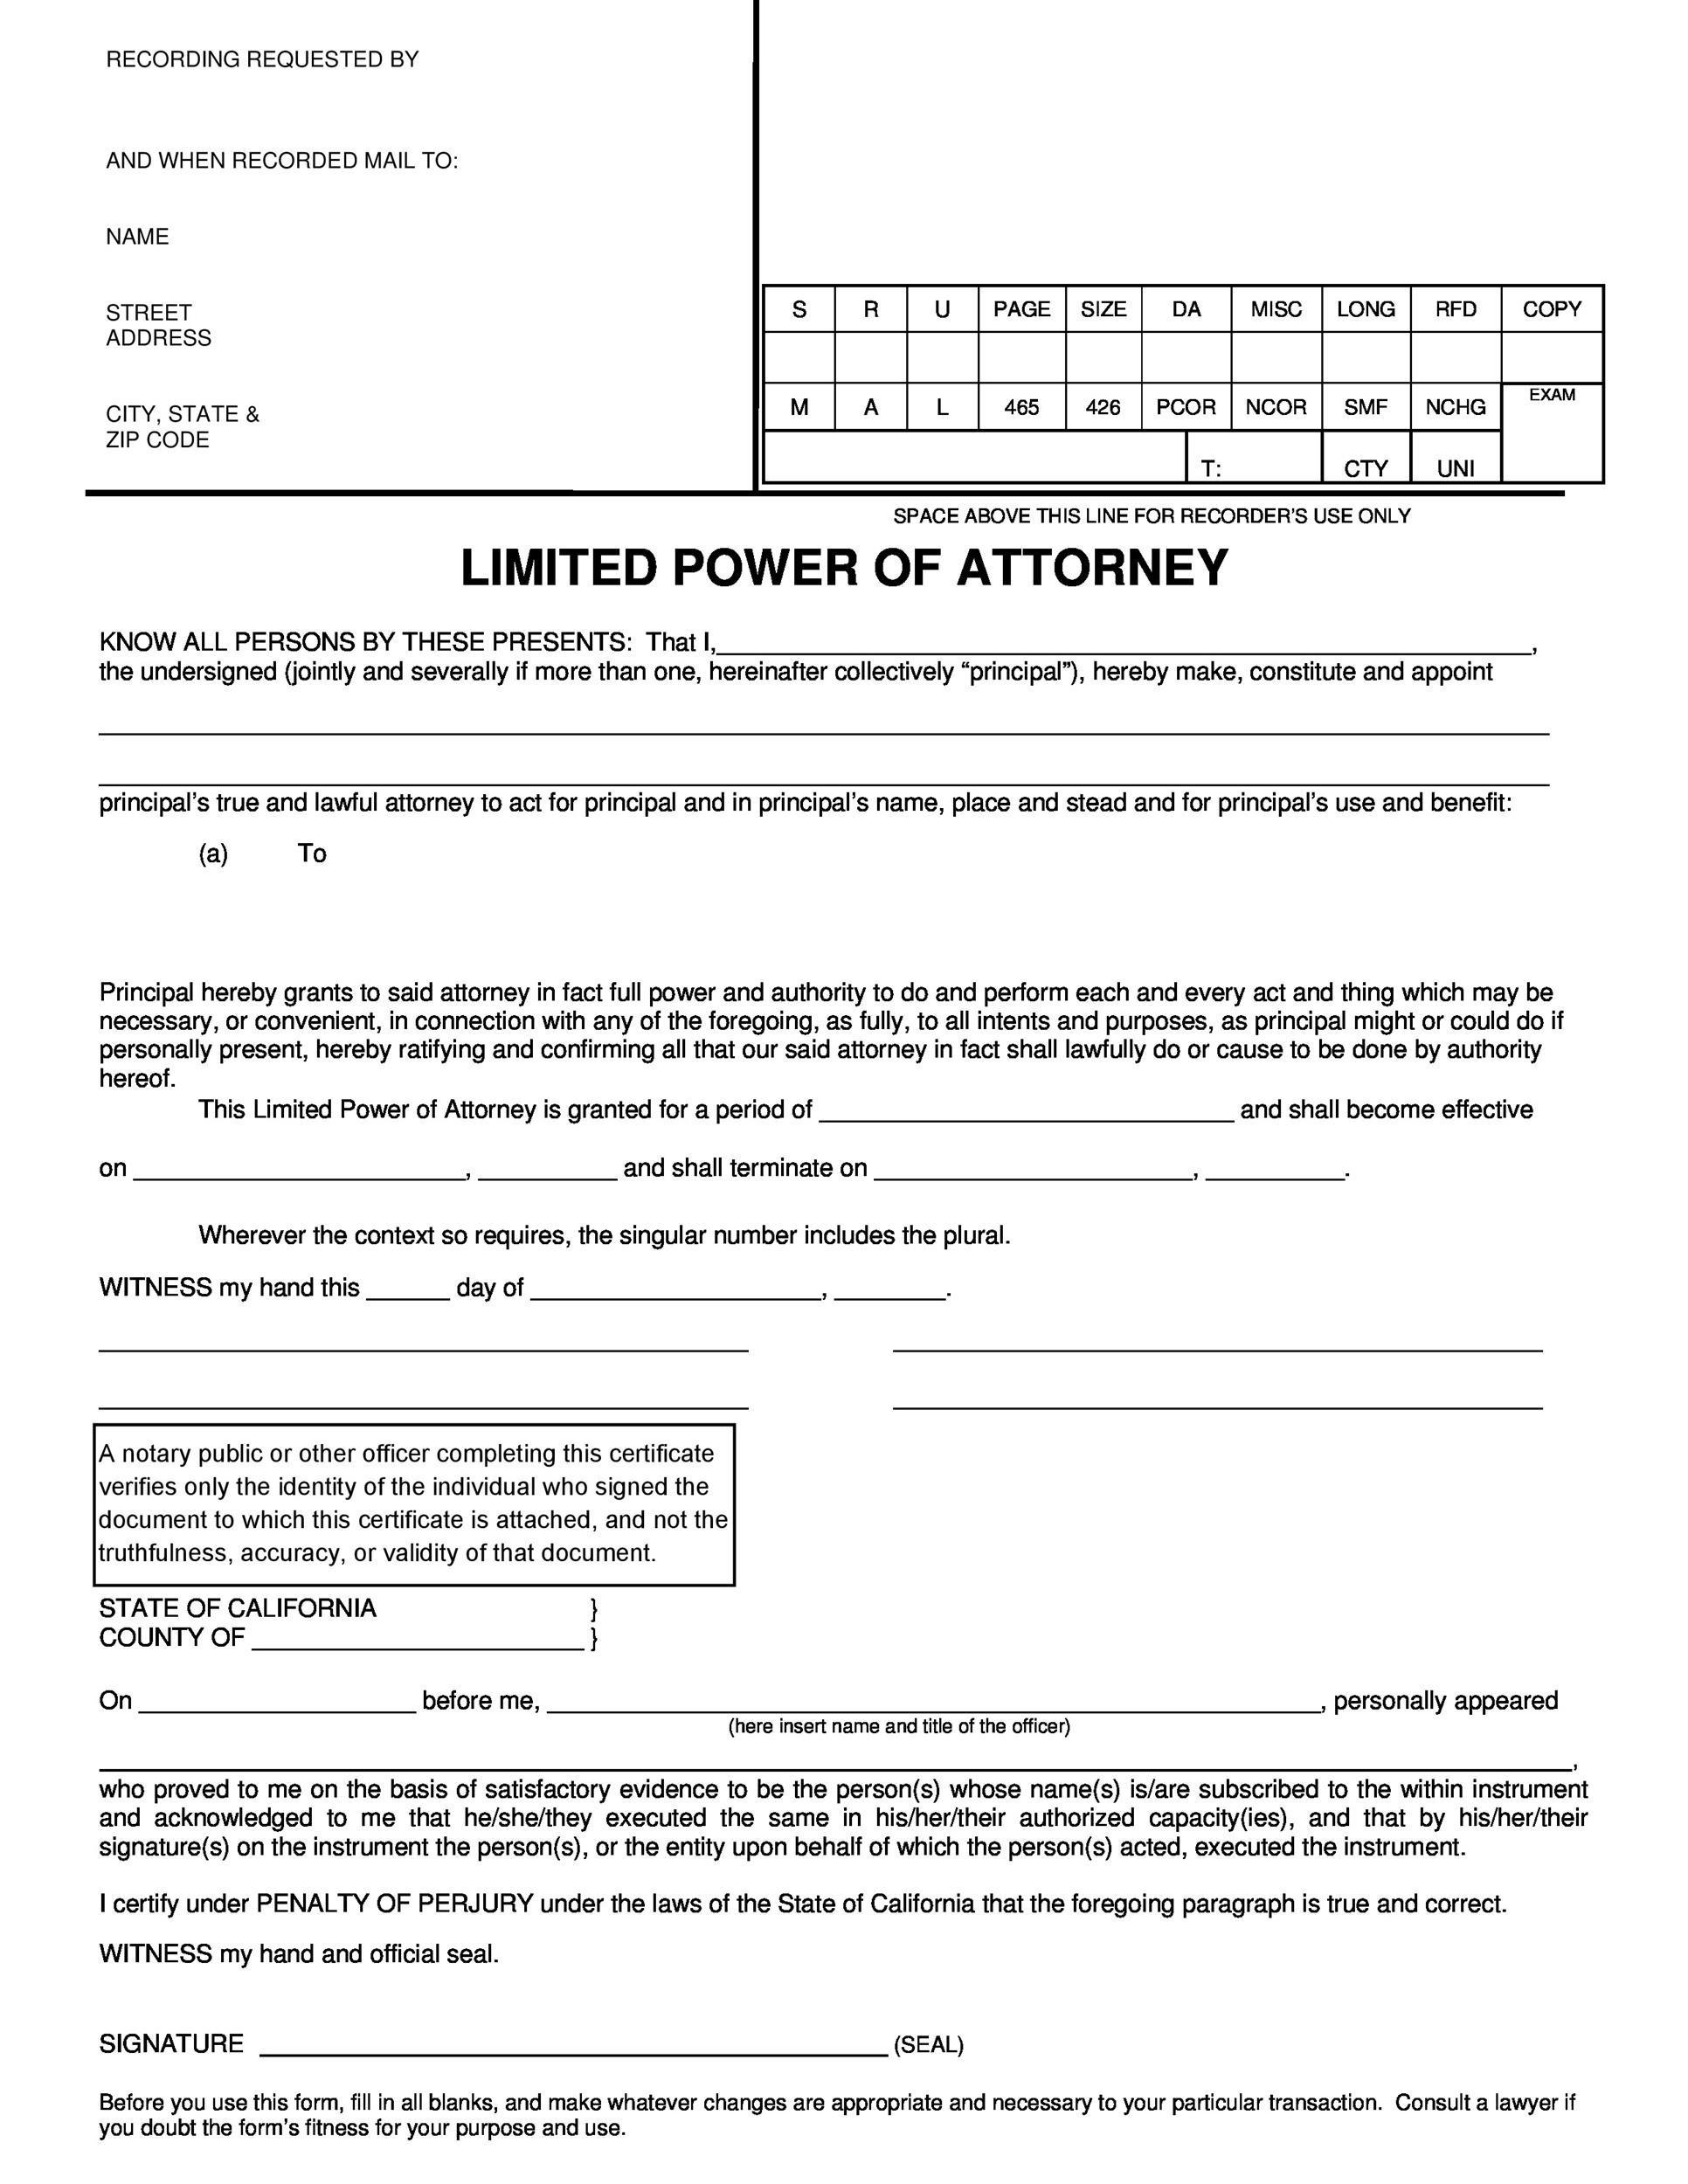 Free power of attorney 26